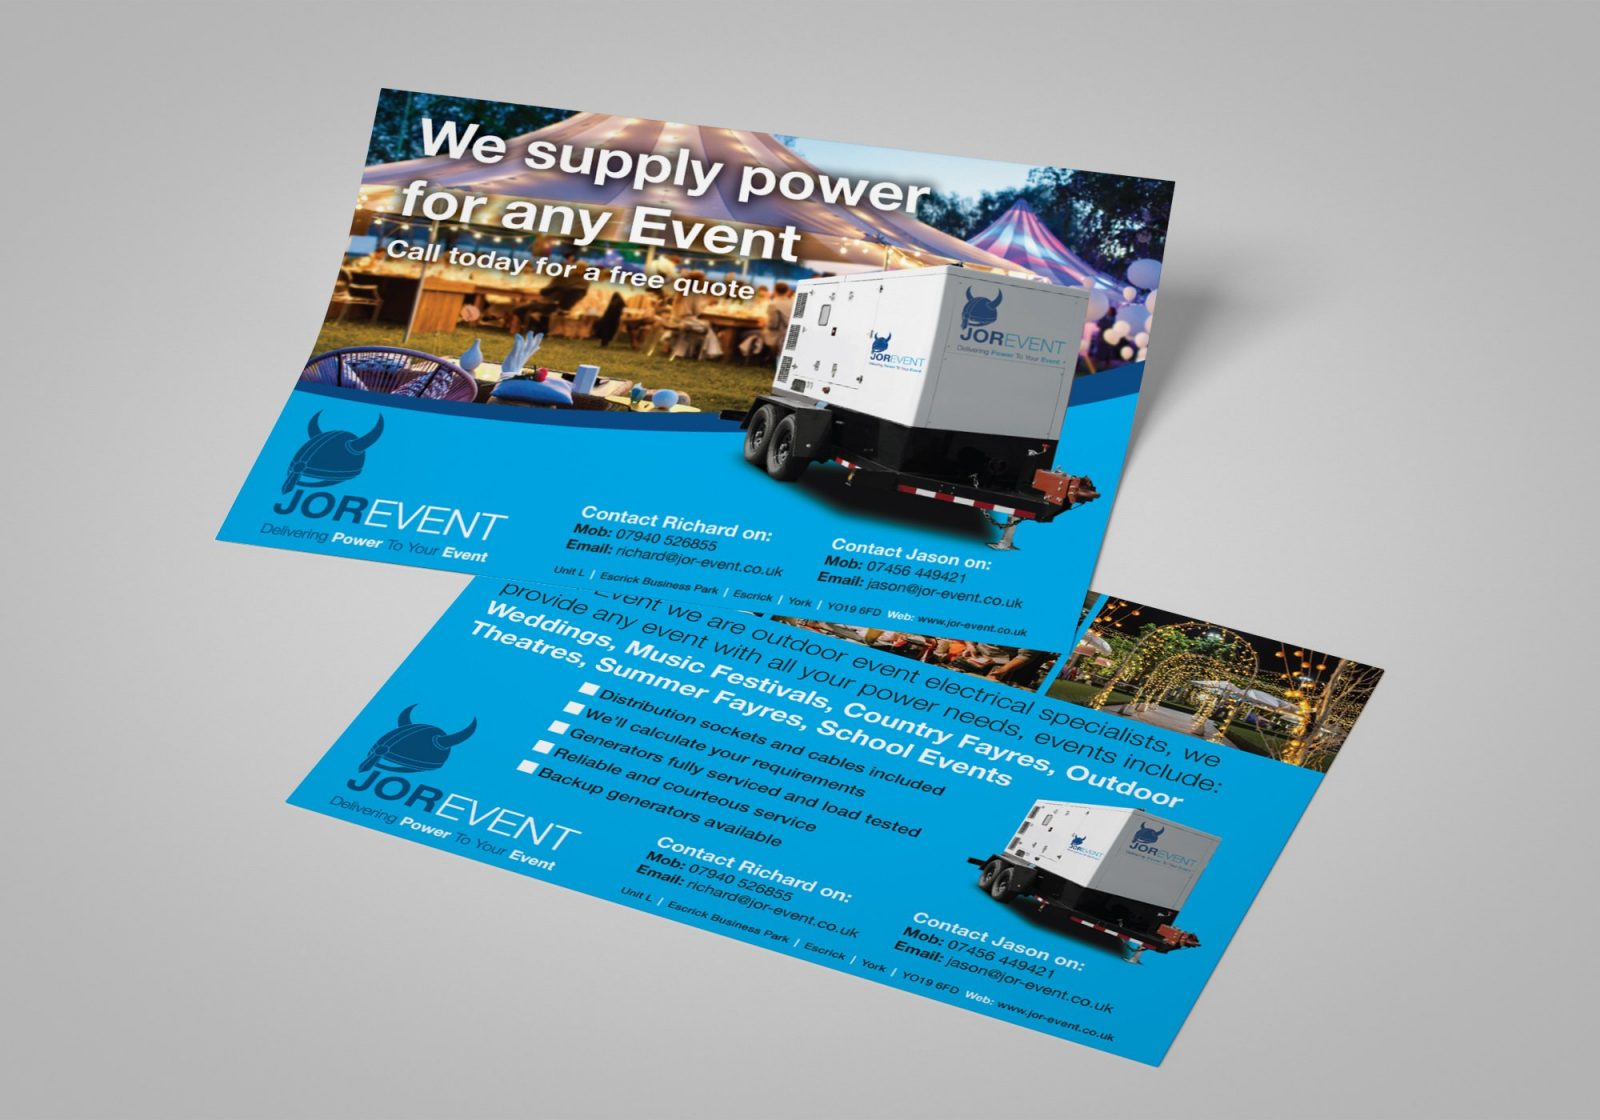 An A5 double sided flyer for Jor-Event generator hire